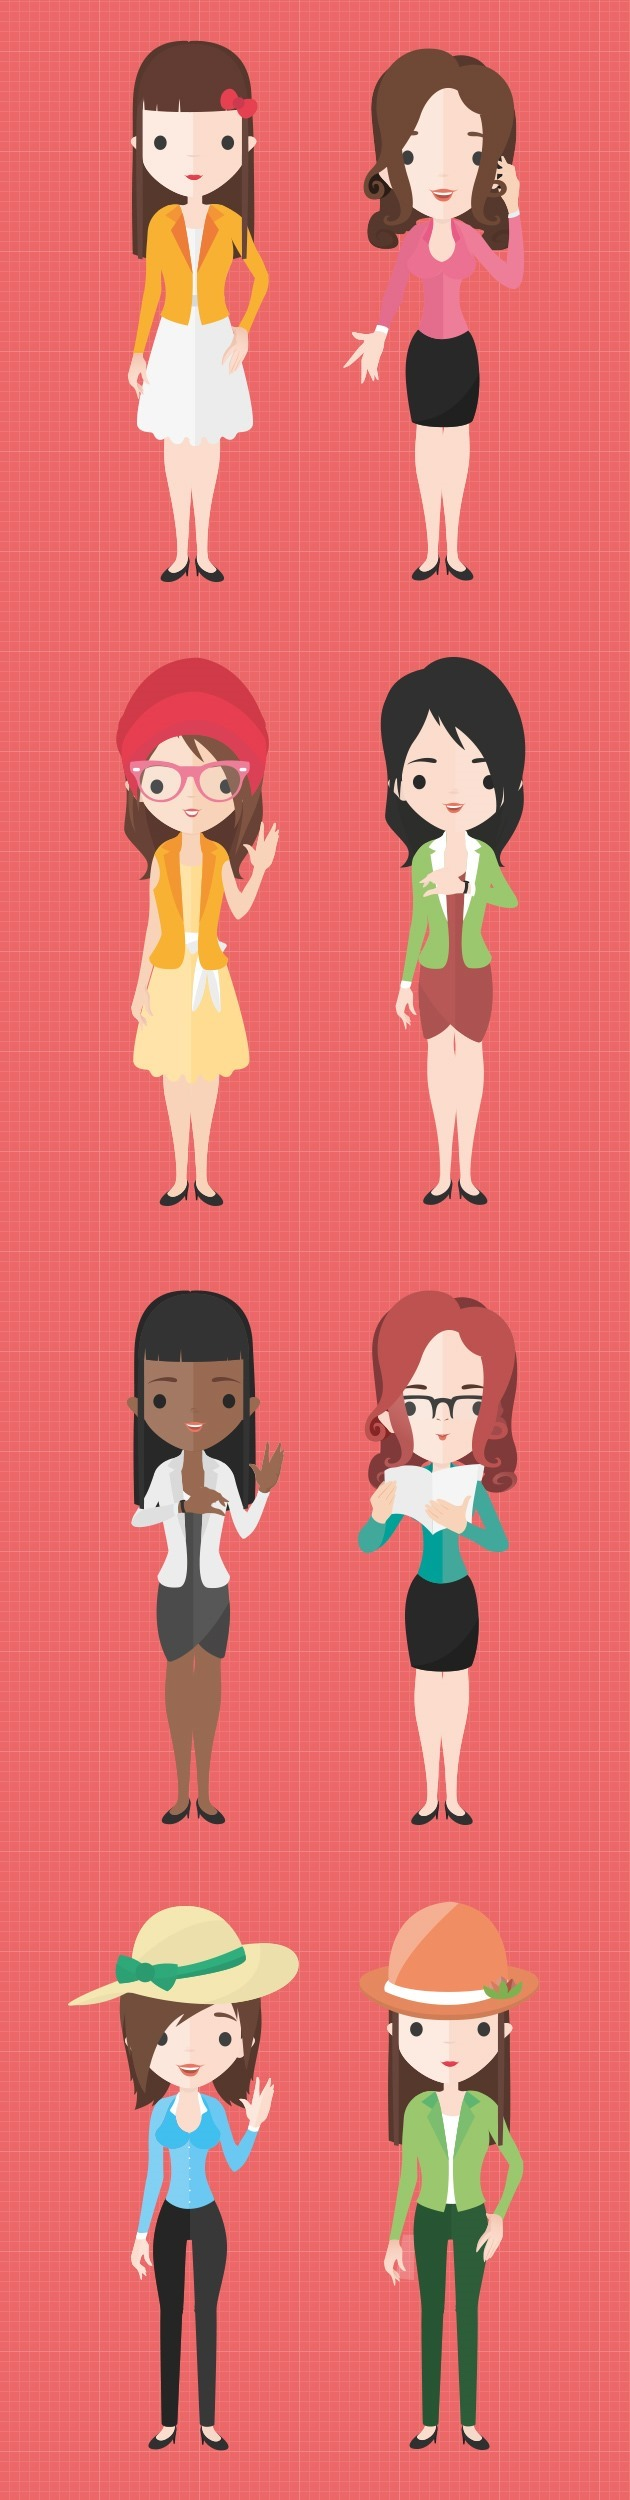 Simple Character Design Illustrator : Flat characters